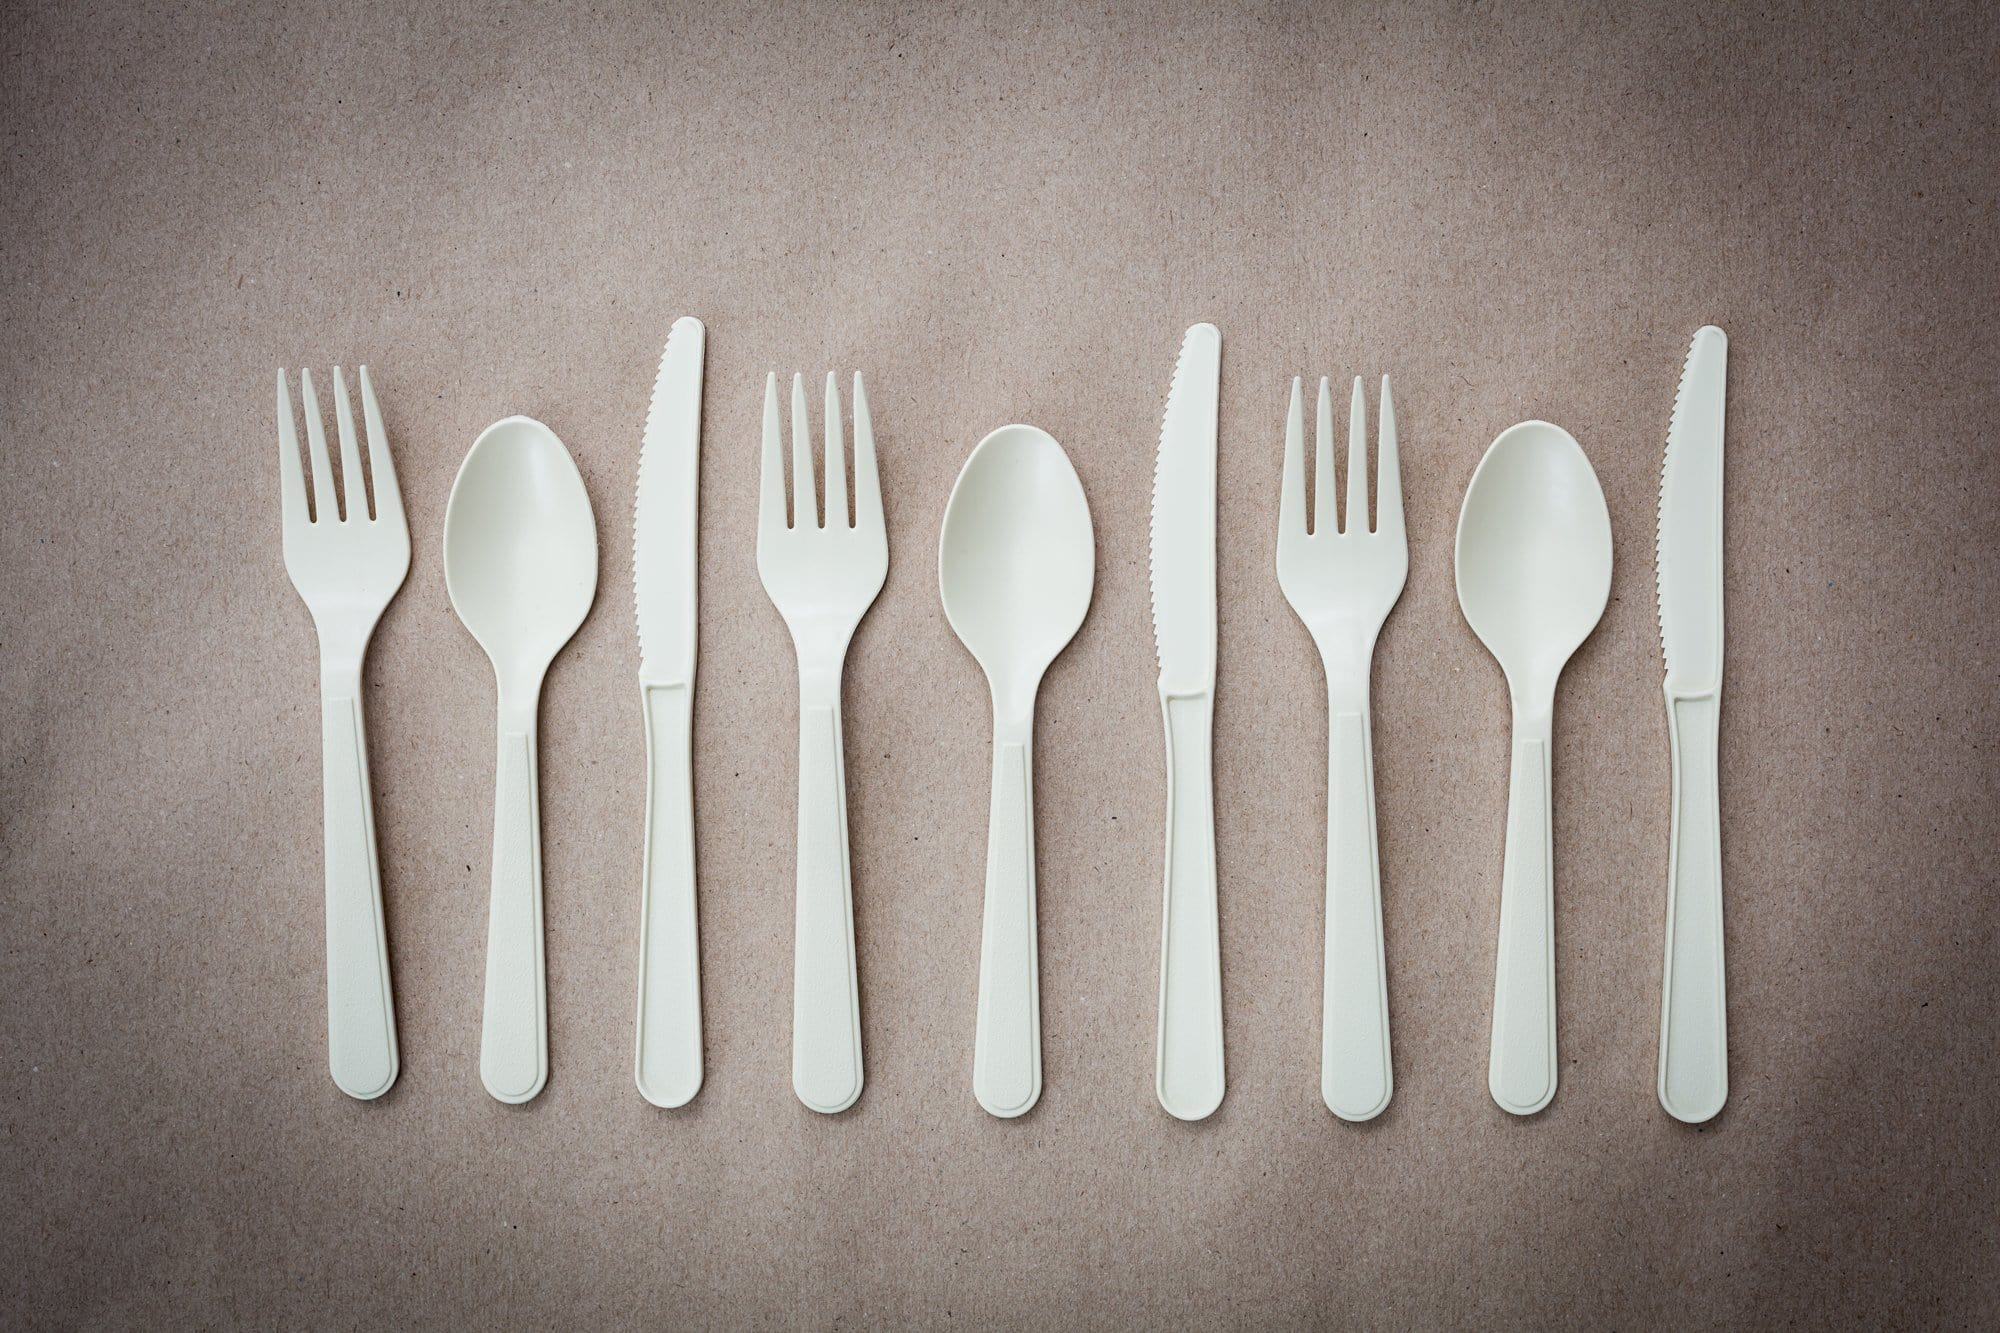 Cutlery - CPLA - Compostable - Evolution Packaging Products